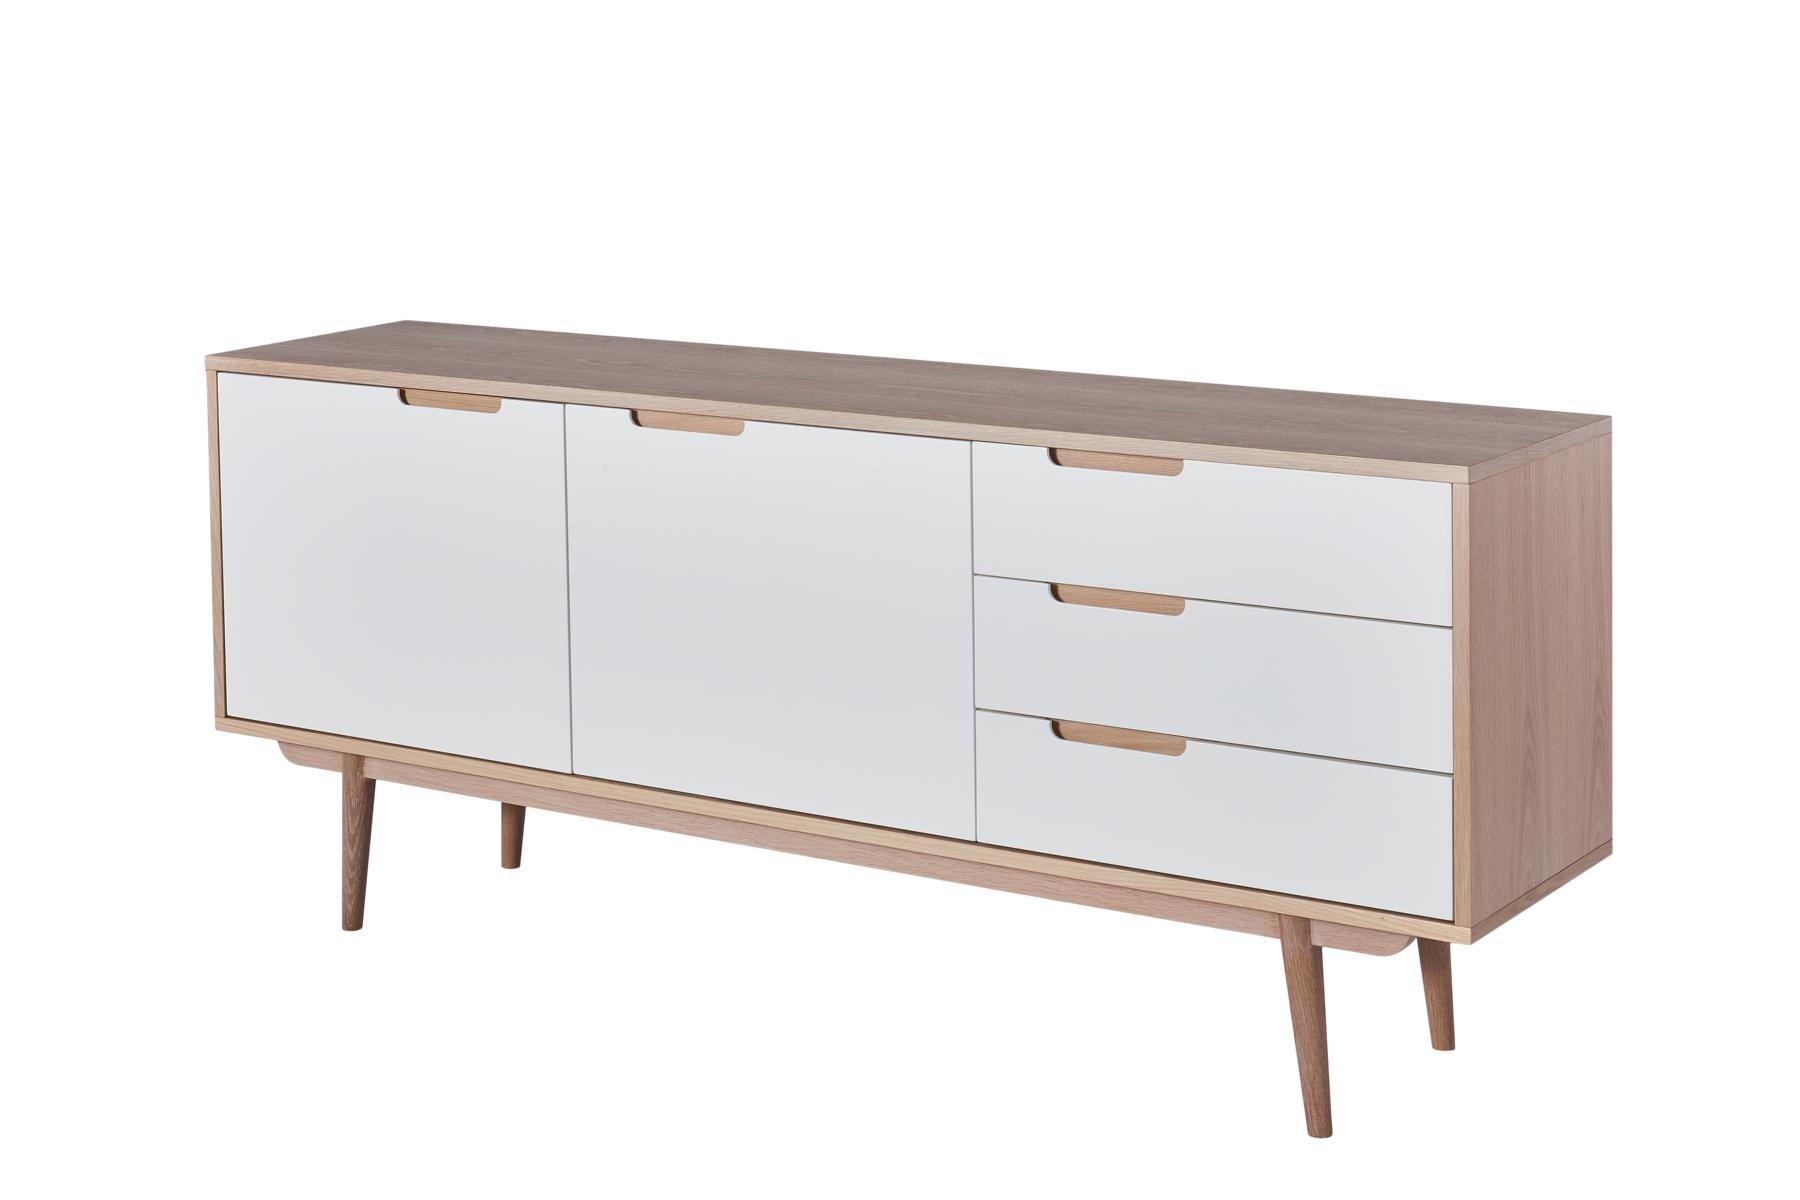 Sideboard Flemma Sideboards Kommoden Sideboards Möbel Cagusto My Home My Style